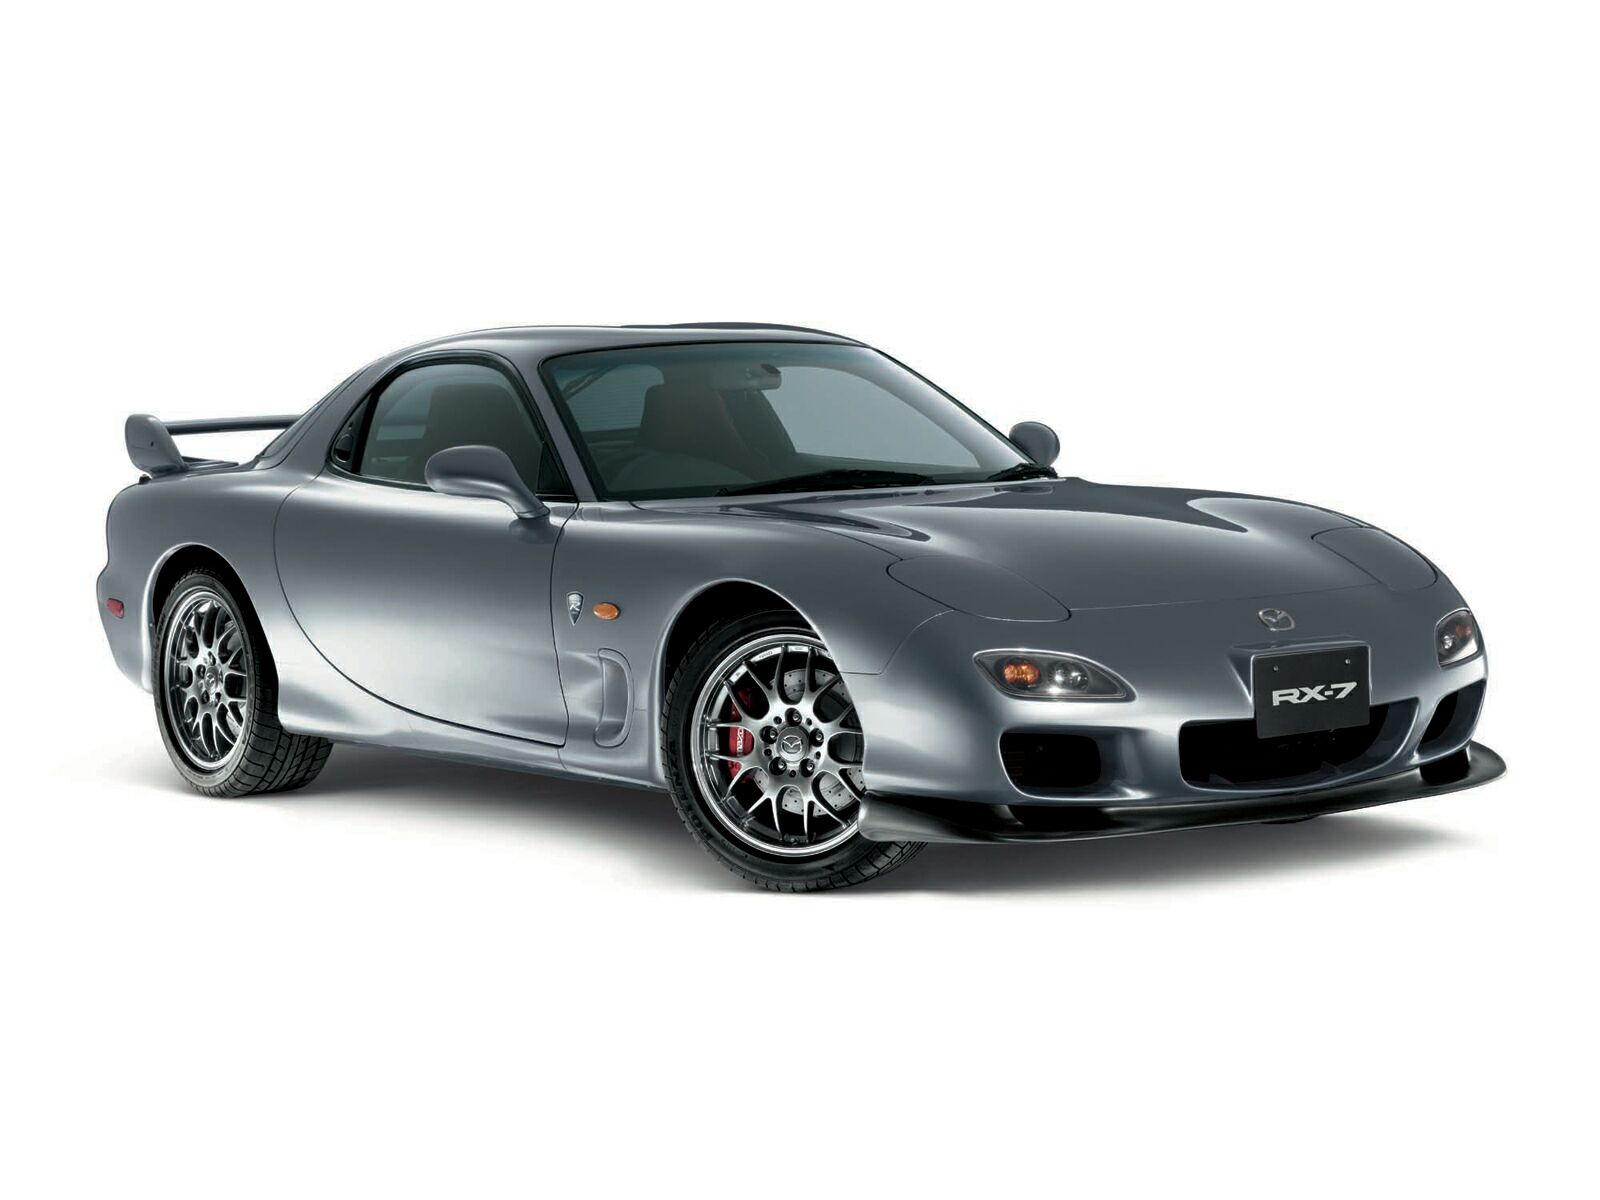 2002 mazda rx 7 version 6 spirit r type a b c. Black Bedroom Furniture Sets. Home Design Ideas